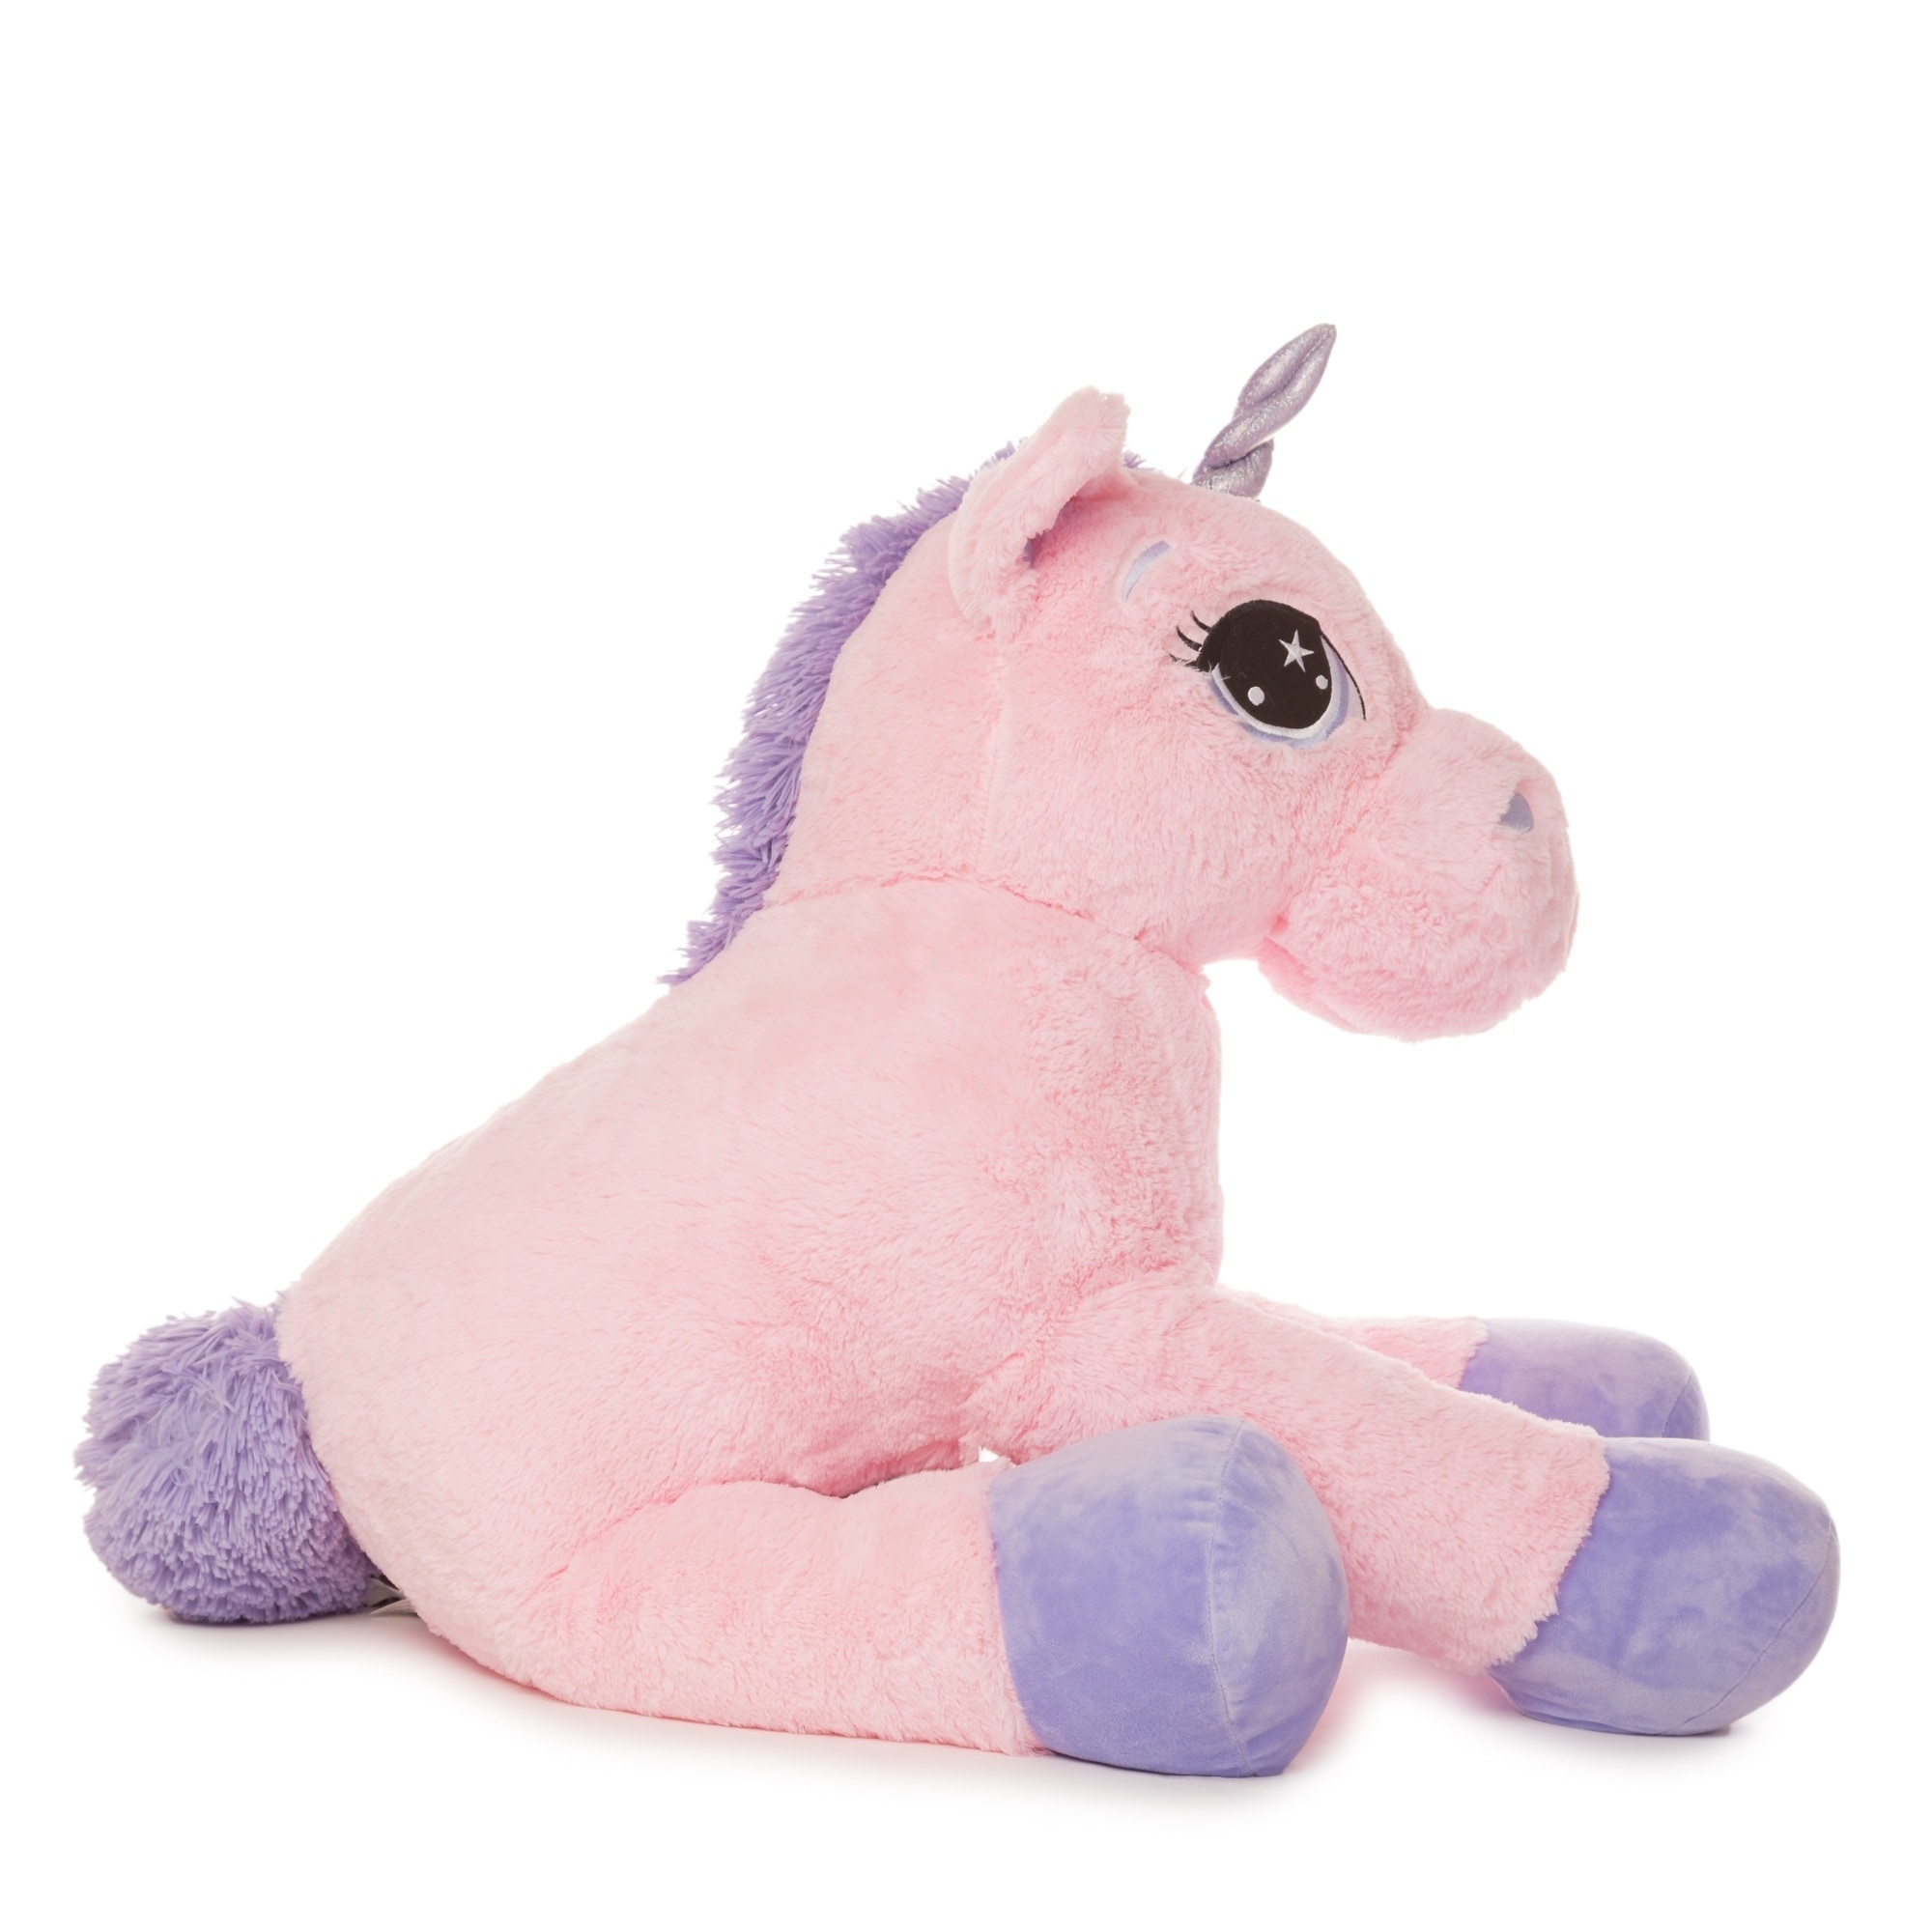 d85ef60b449d Shop Best Made Toys Jumbo Unicorn Giant Plush Animal - Over 4 feet long! -  Free Shipping Today - Overstock - 18118010